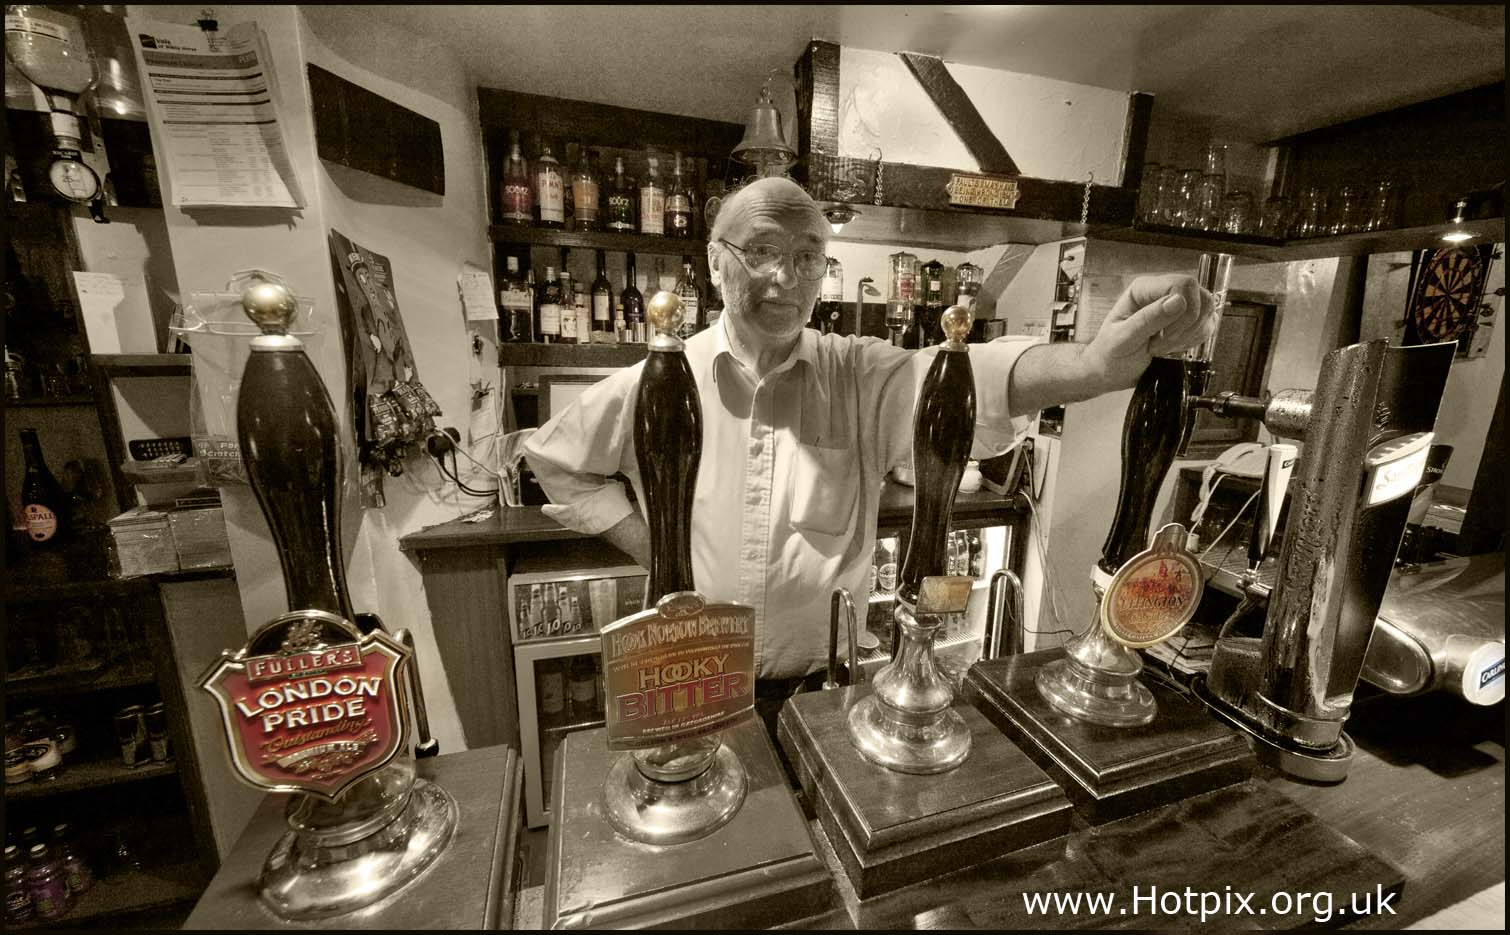 star,inn,starr,sparsholt,wantage,oxford,oxfordshire,oxon,england,britain,UK,pub,mick,mike,dawn,sepia,toned,b/w,black,white,bar,drinks,drinking,beer,real,ale,camra,cosy,friendly,accomodation,rooms,b&B,bed,breakfast,boozer,english,traditional,tonysmith,tony,smith,hotpix,hotpixuk,selctive,colour,color,colores,interesting,place,places,building,buildings,built,architecture,favourite,pubs,public,houses